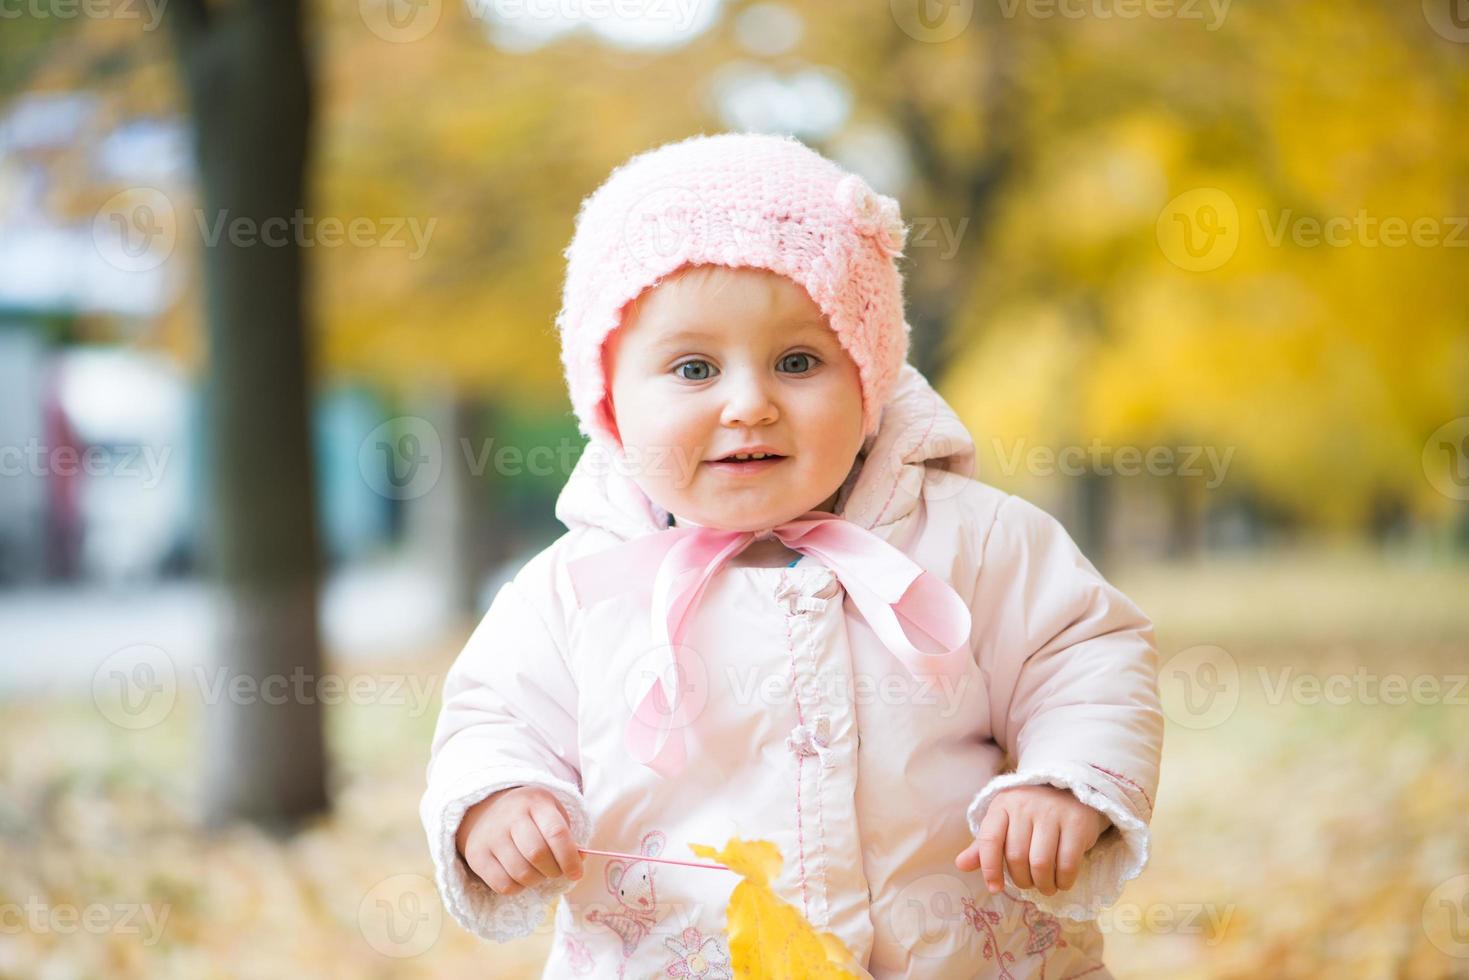 little baby in the park photo